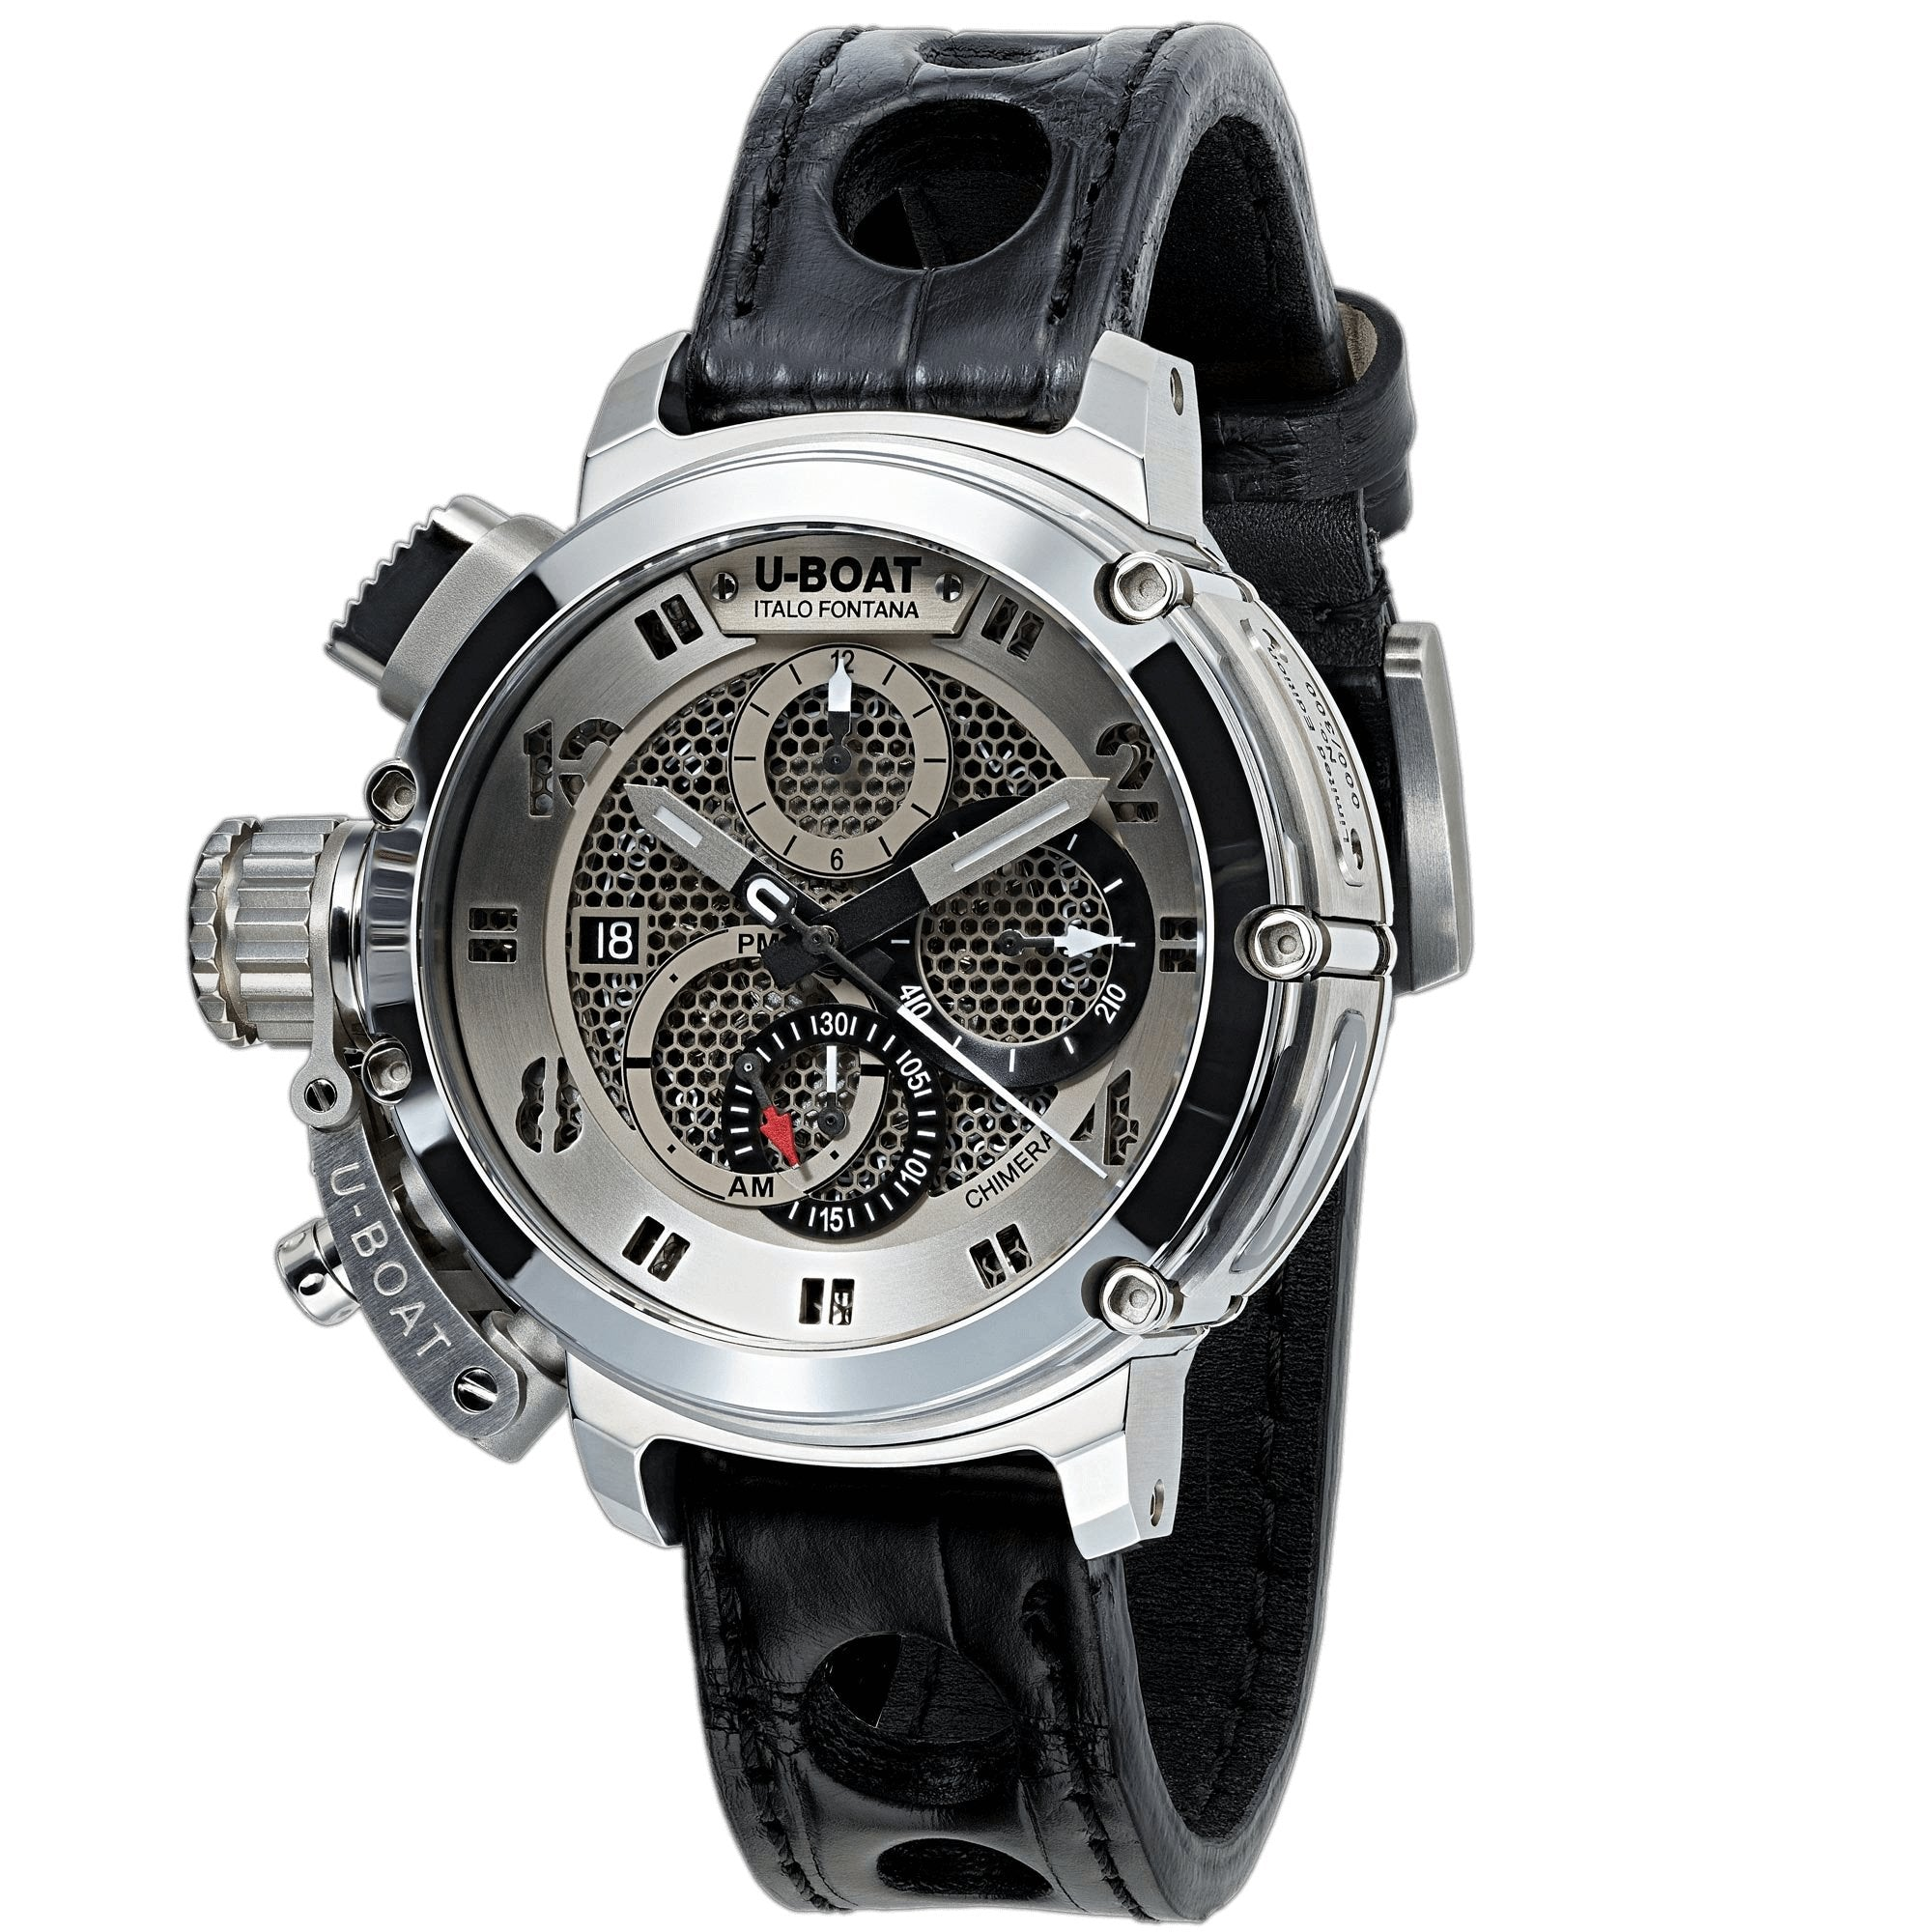 U-Boat Chimera 46 Chronograph Stainless Steel Limited Edition - Watches & Crystals